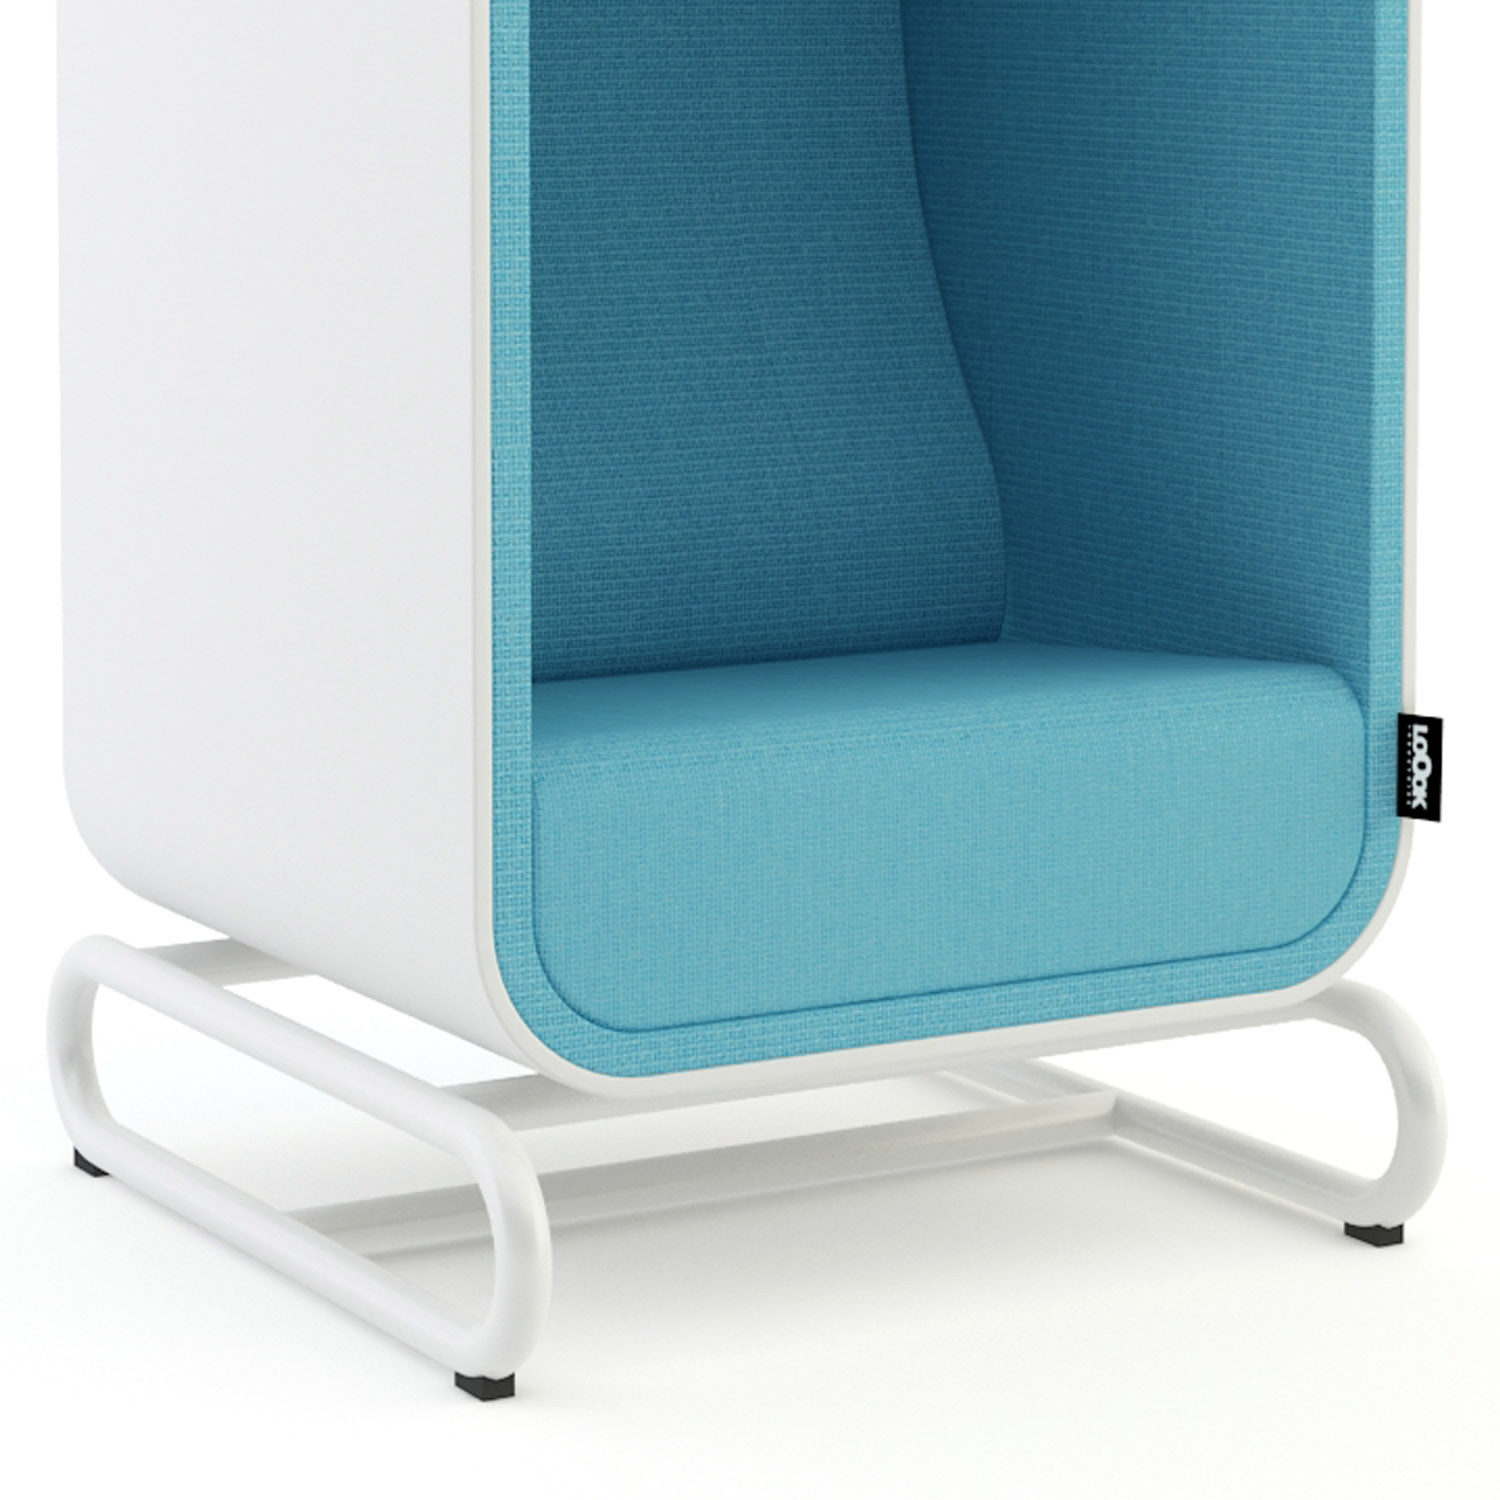 The Box Lounger Chair with Skid Base